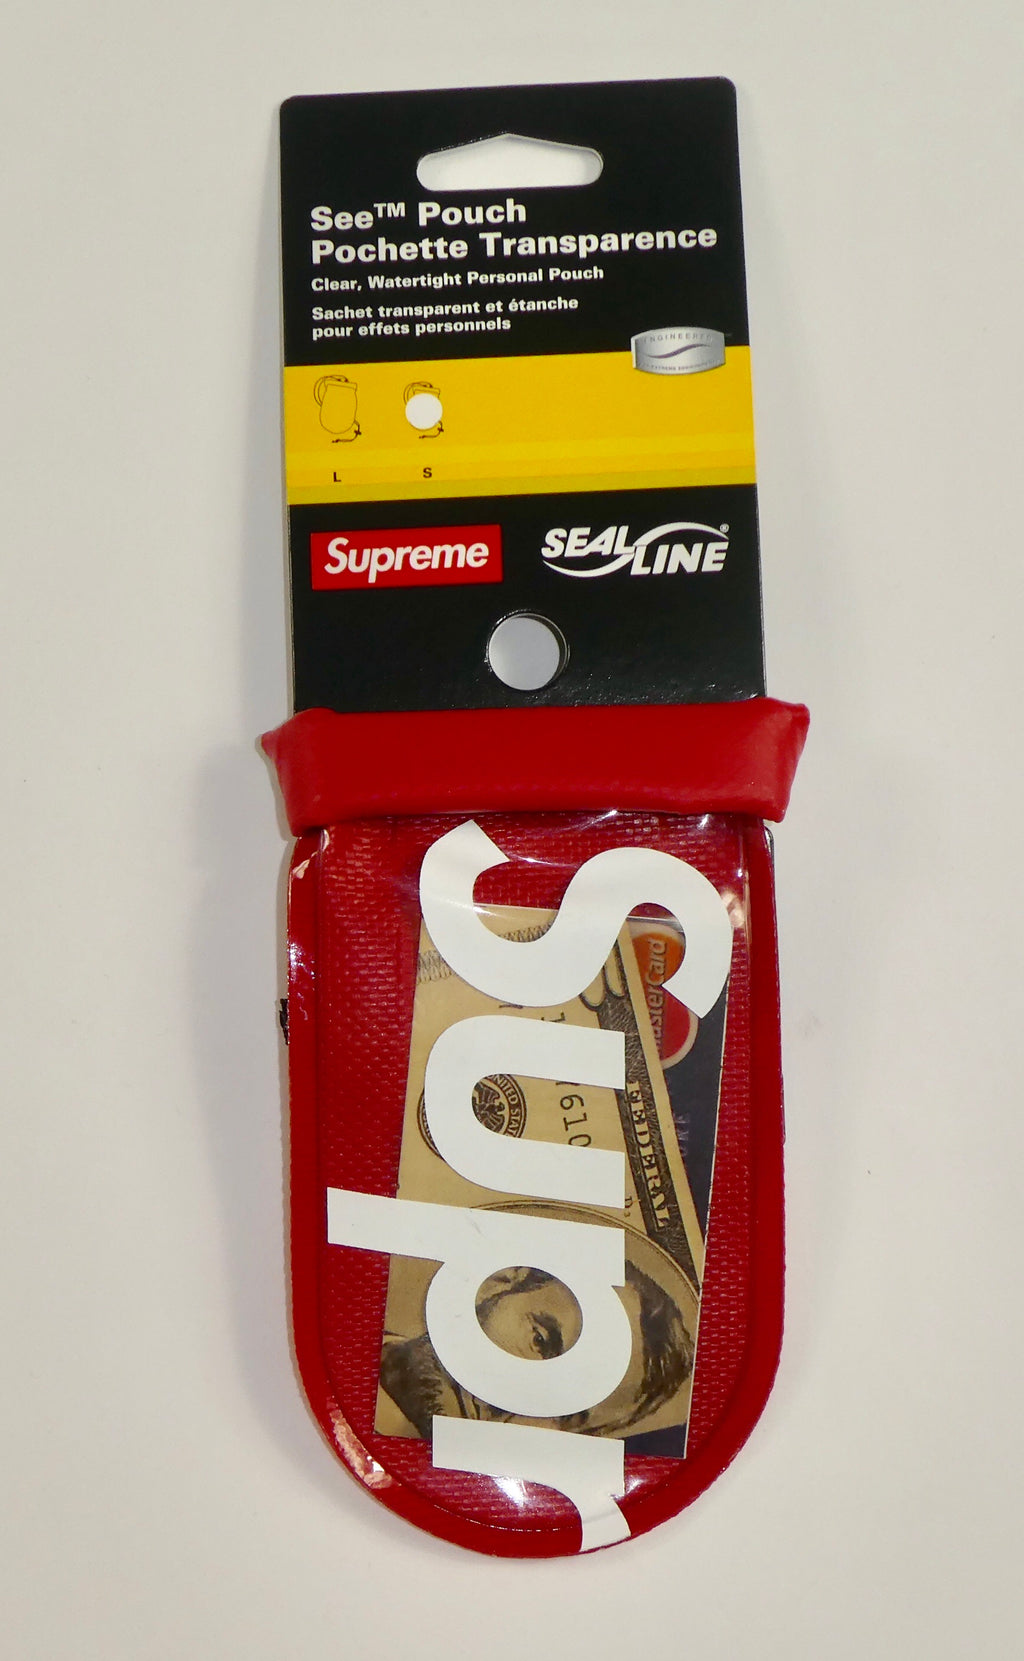 Supreme Sealine Pouch (small)